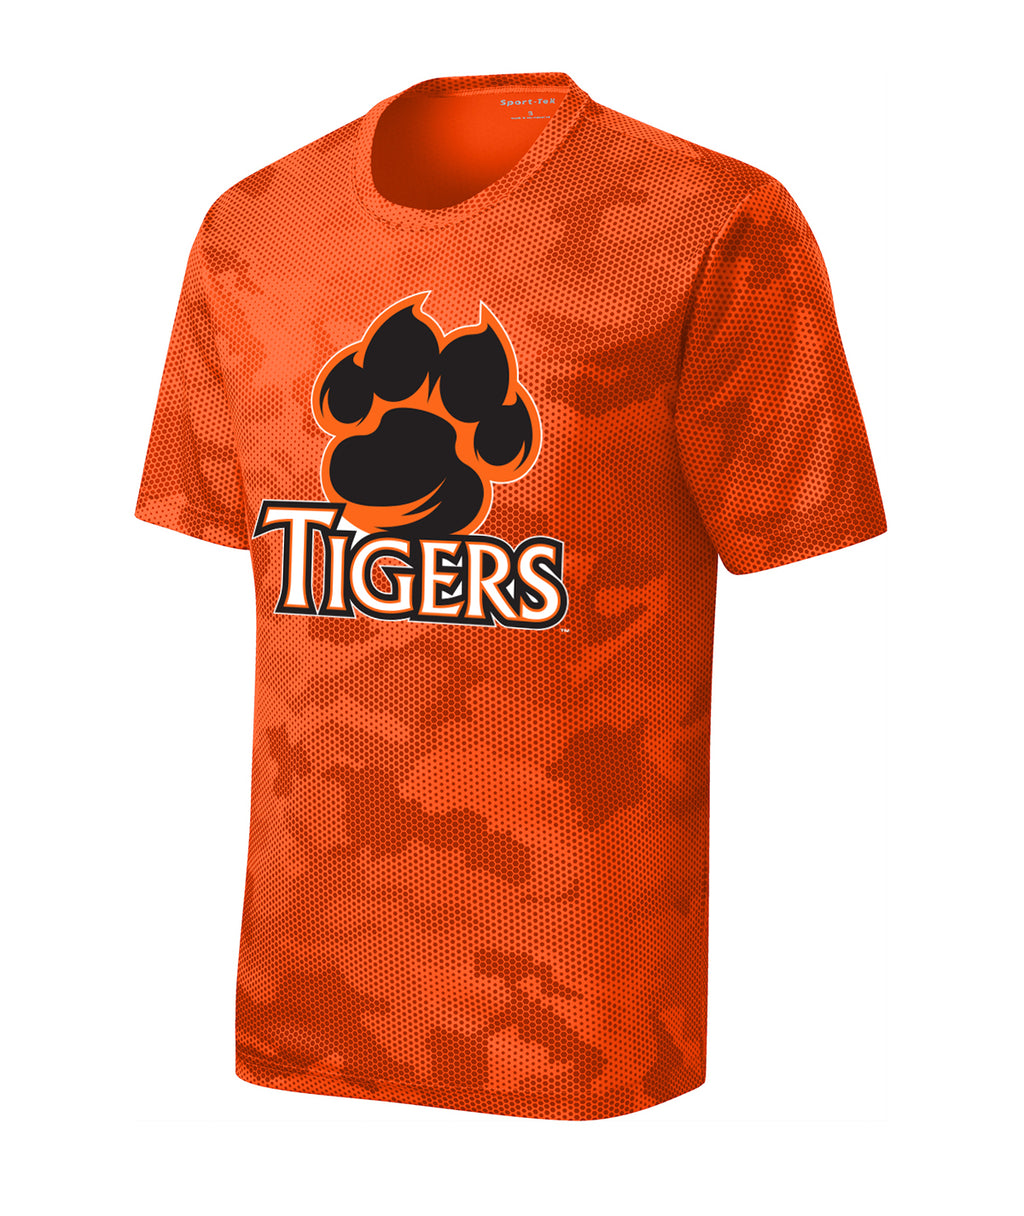 Tigers Youth CamoHex Performance Tee